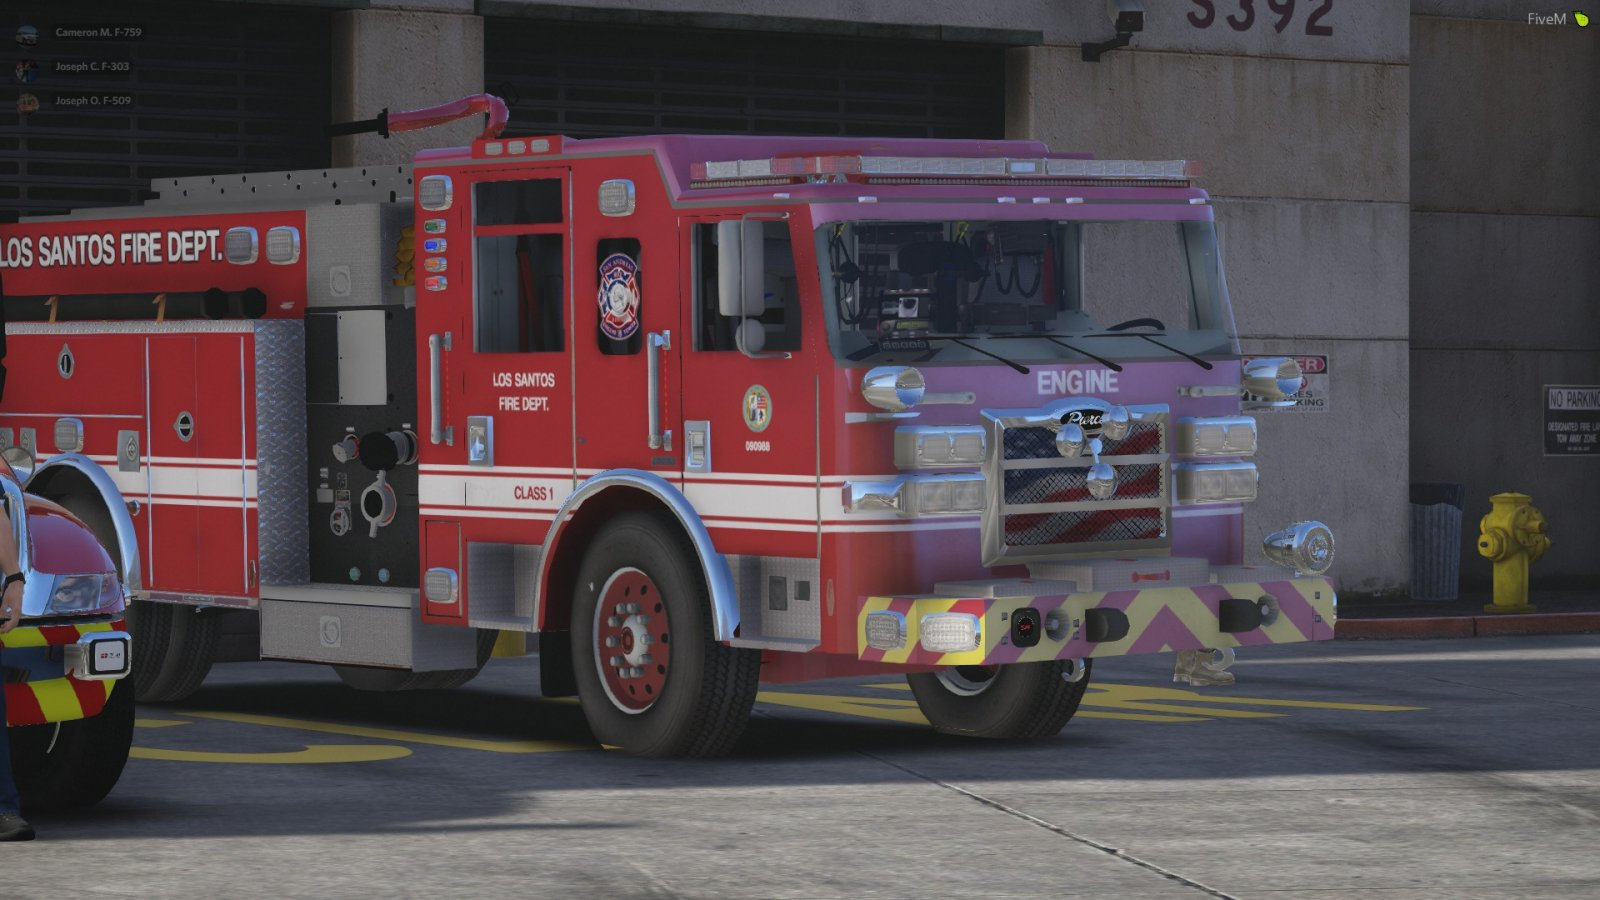 LSFD Engine at Station 4